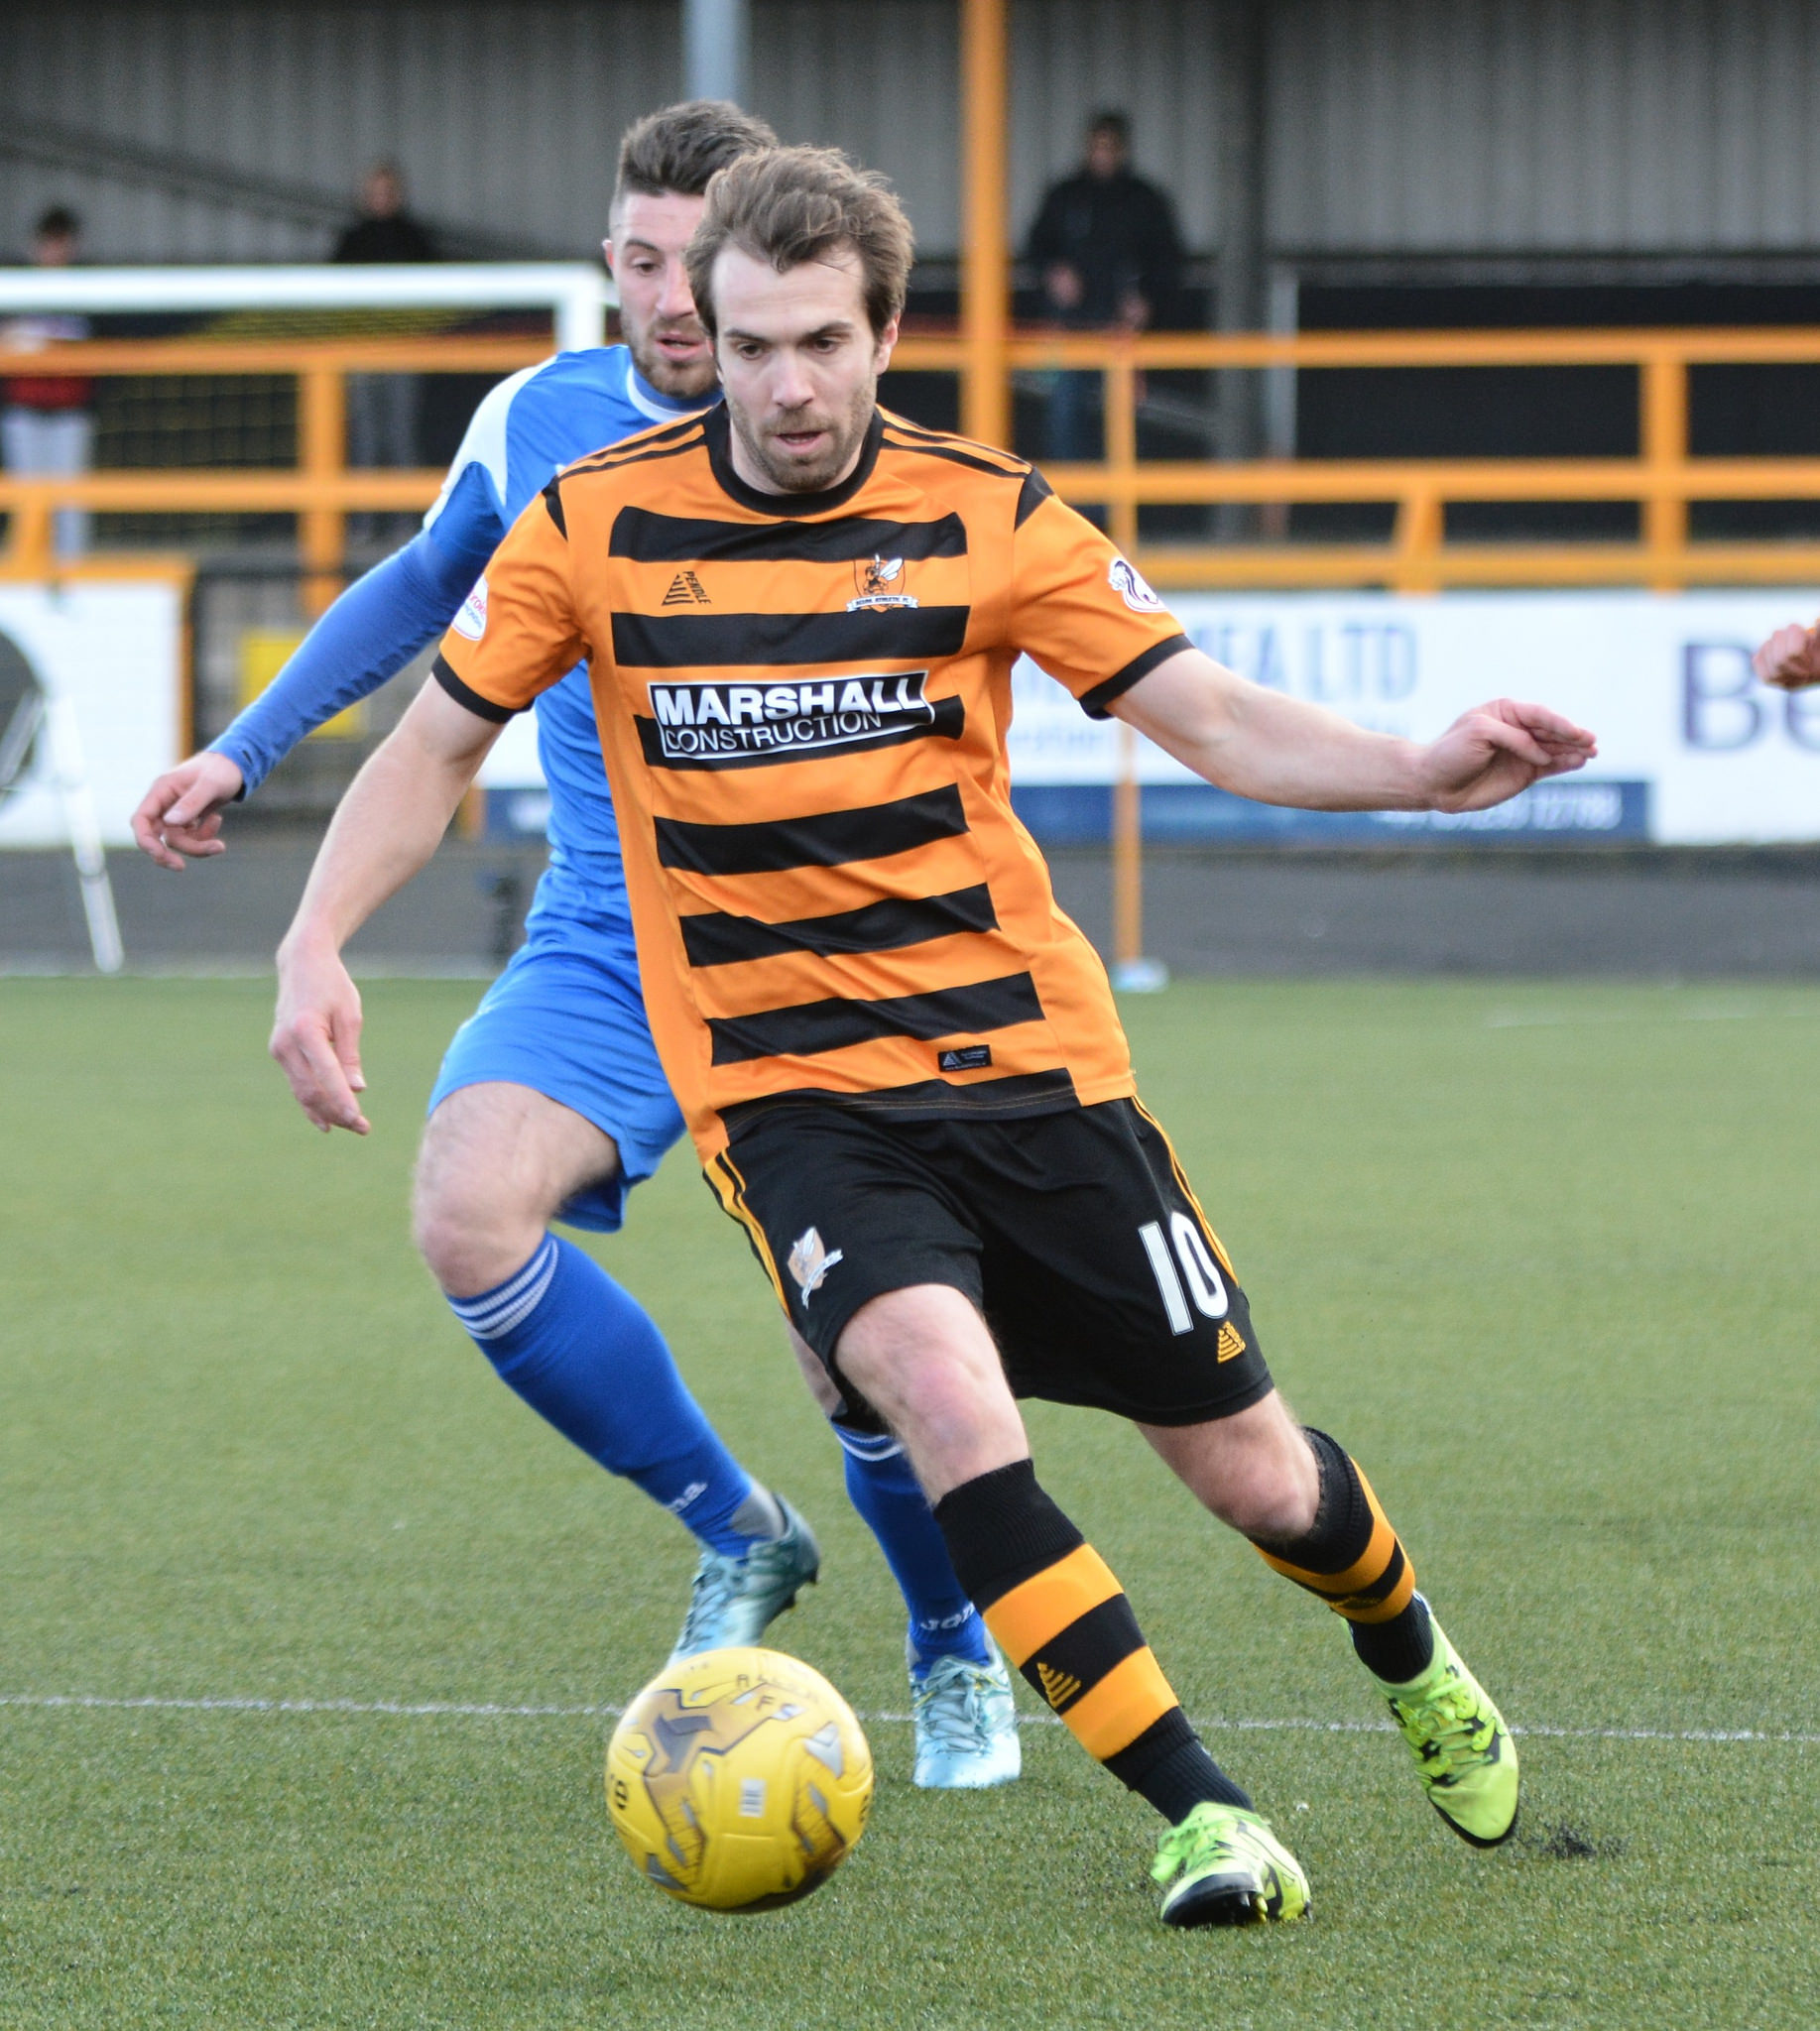 Alloa midfielder Graeme Holmes is closing in on 200 appearances for the club